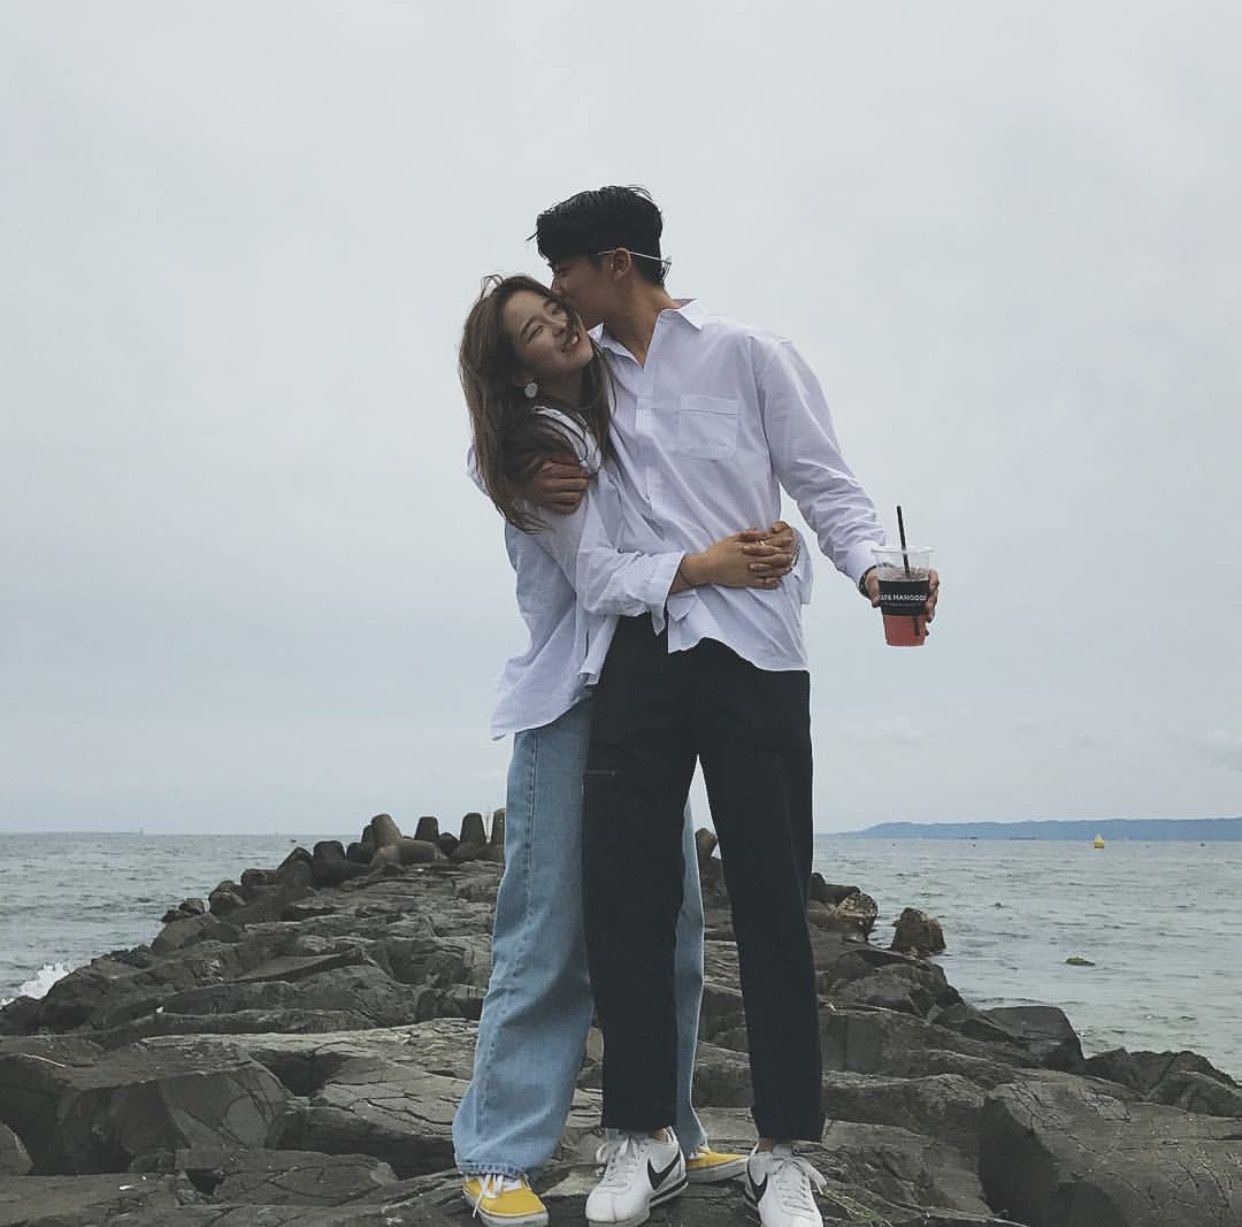 Pin by y on Couple. in 2019 | Pinterest | Ulzzang couple ...